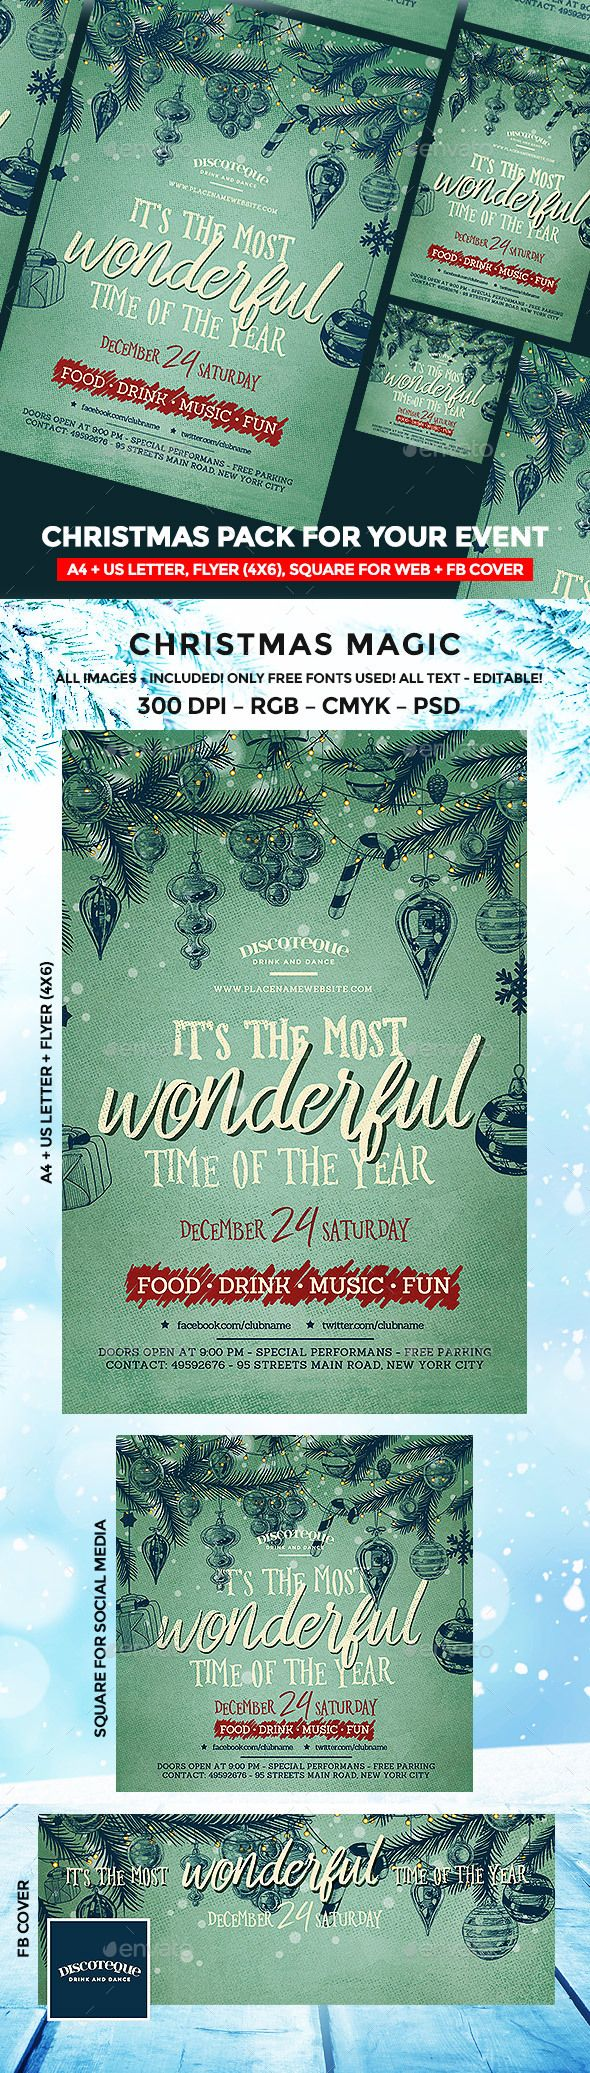 73 best Party design images on Pinterest | Christmas flyer, Event ...